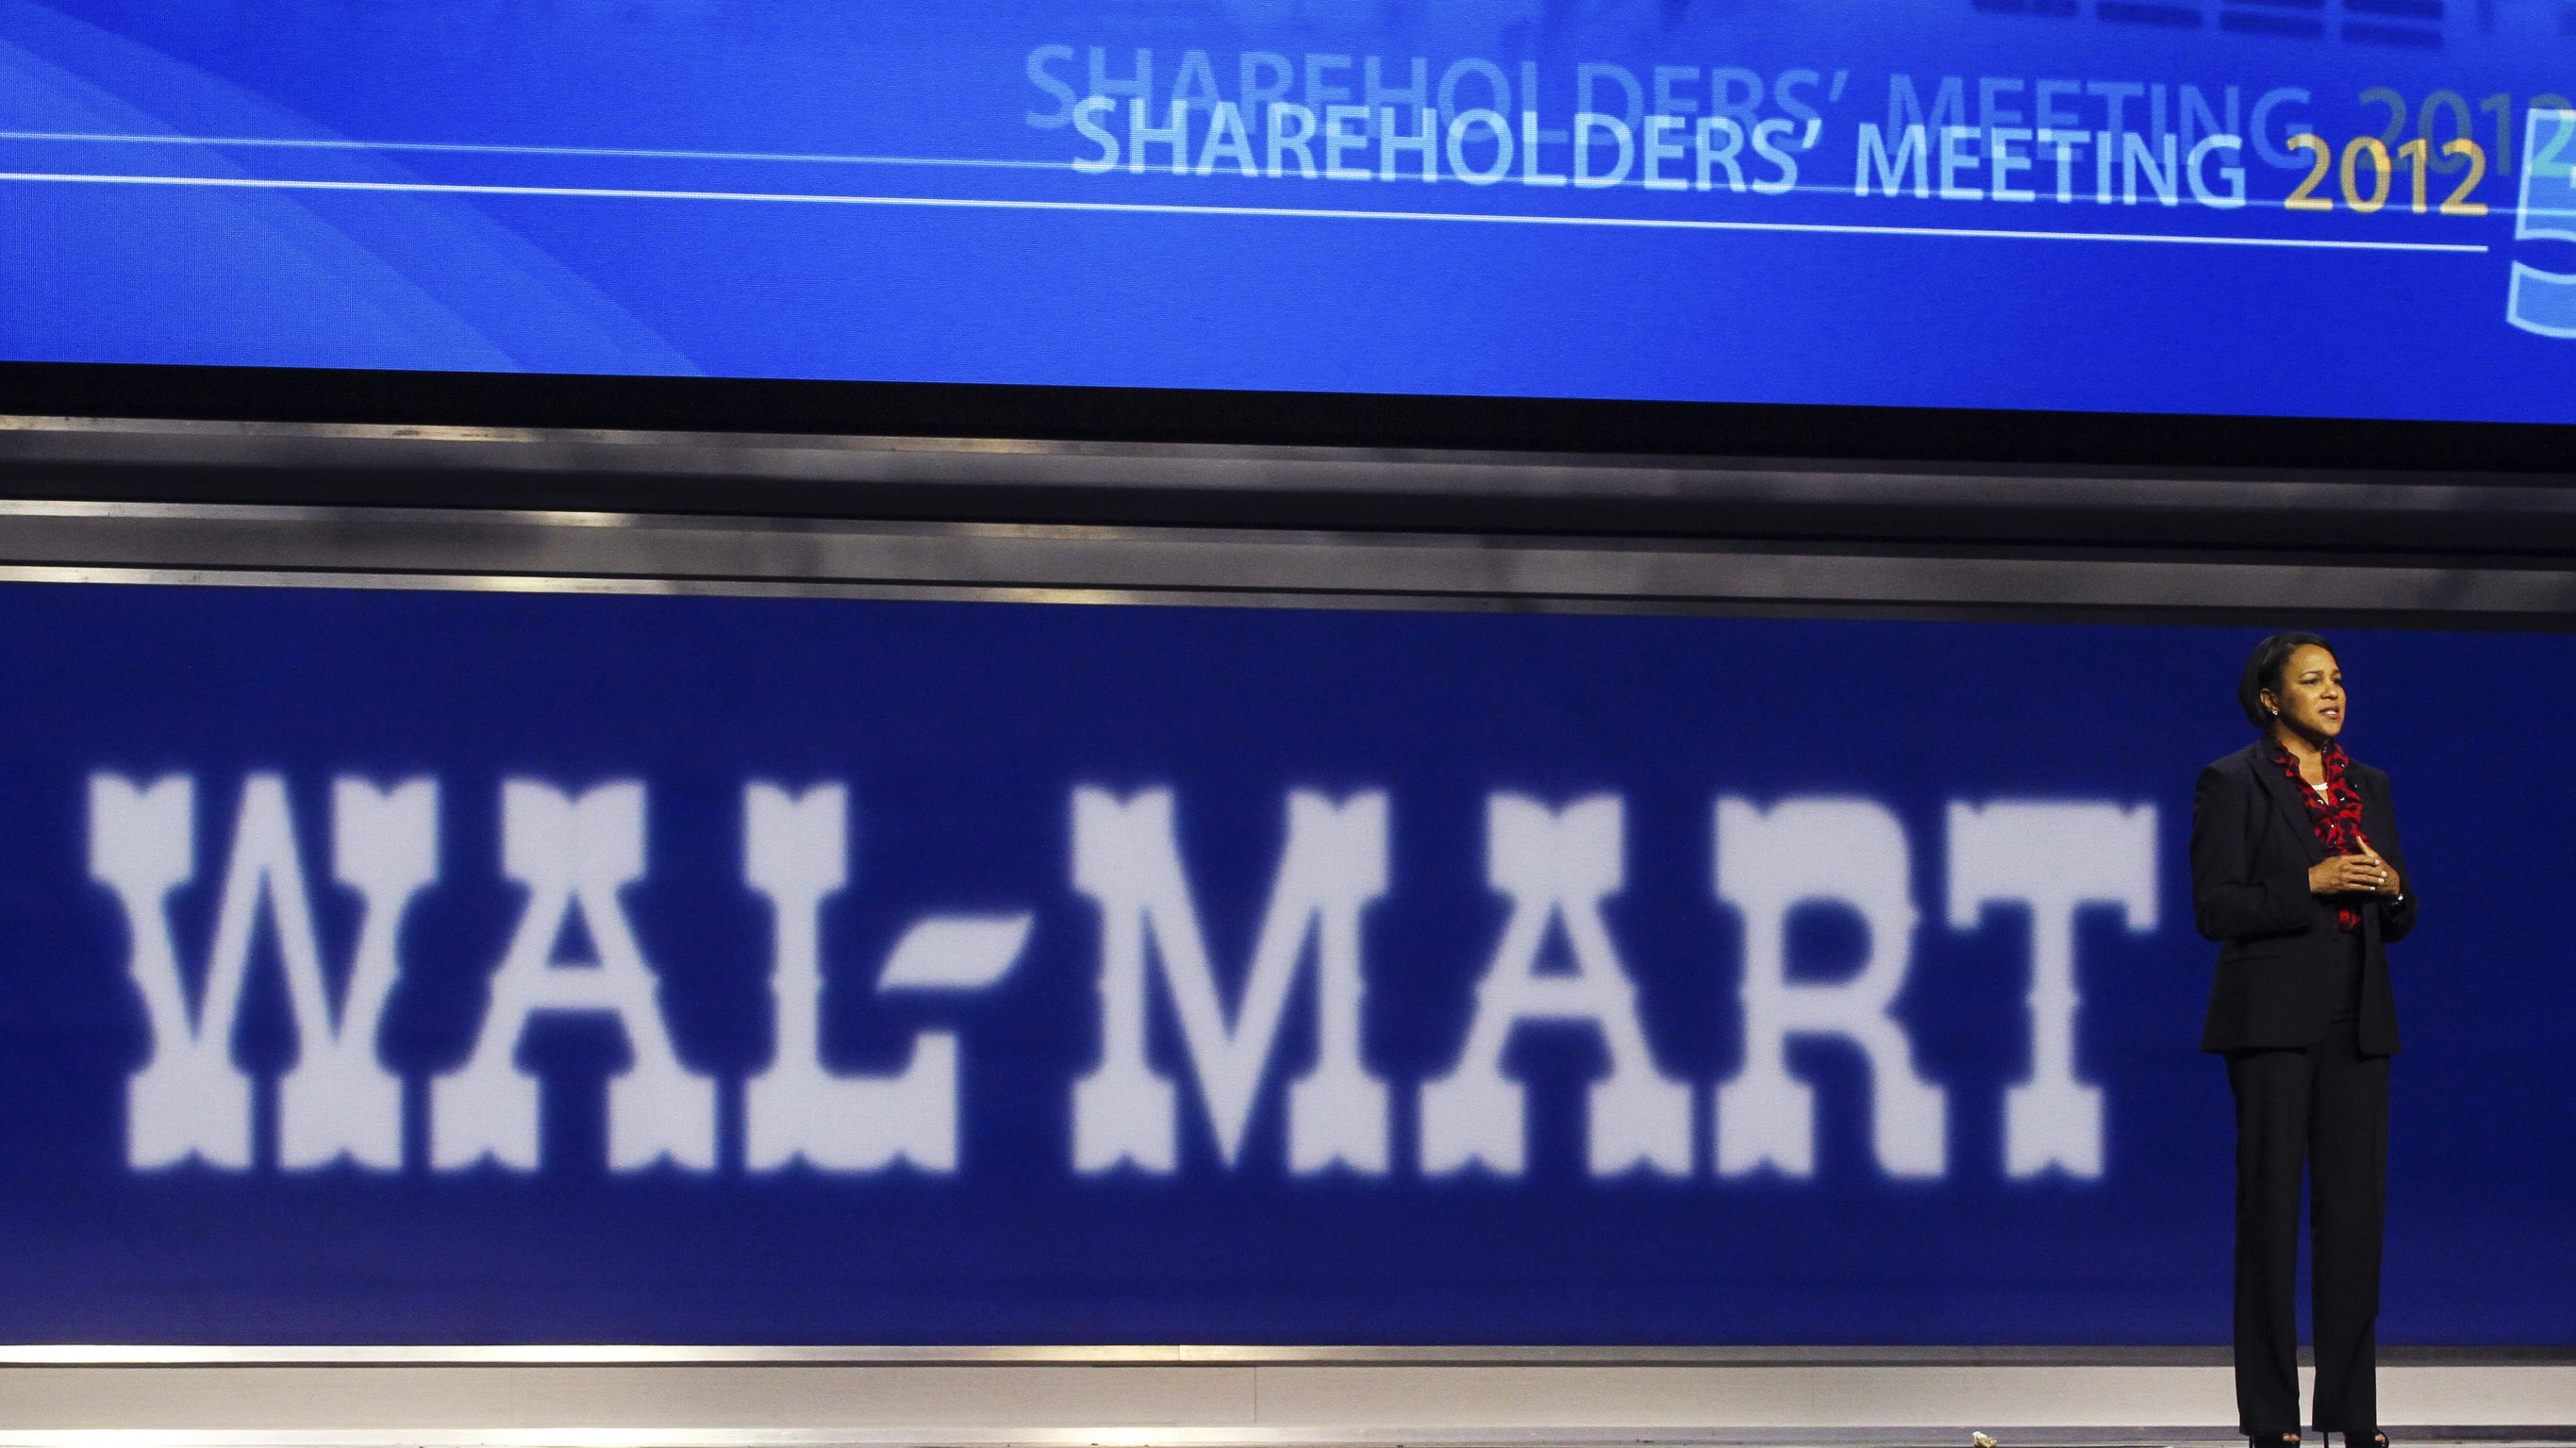 Sam's Club CEO Rosalind Brewer stands in front of a large, dark blue Wal-Mart sign during the company's annual shareholders' meeting.